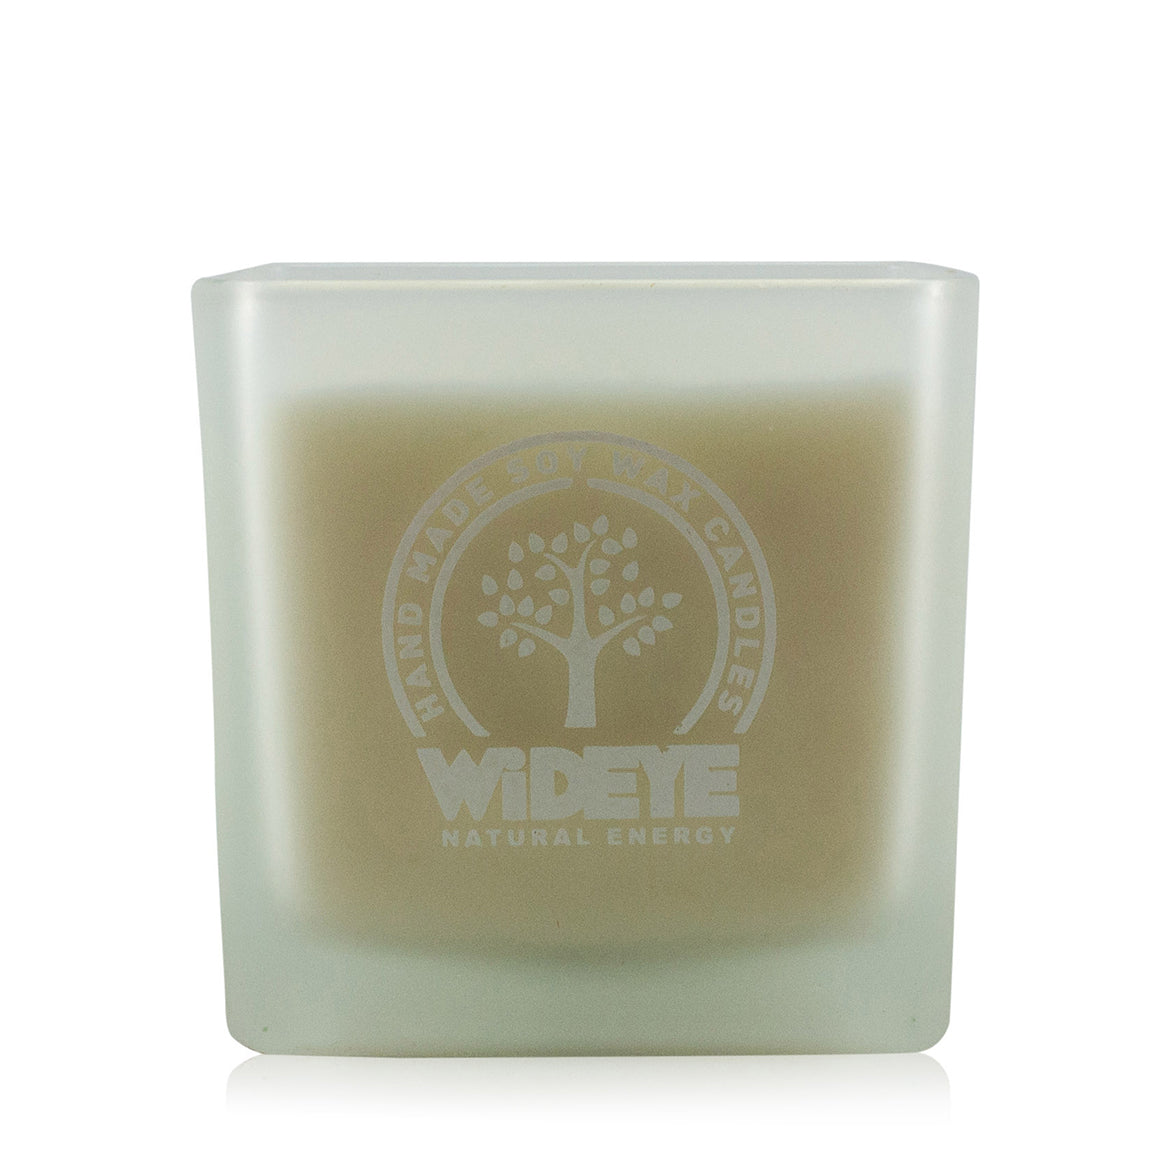 Natural vegan aromatherapy Rose and lime soy wax candle in large frosted glass jar, handmade by WiDEYE in Rye.